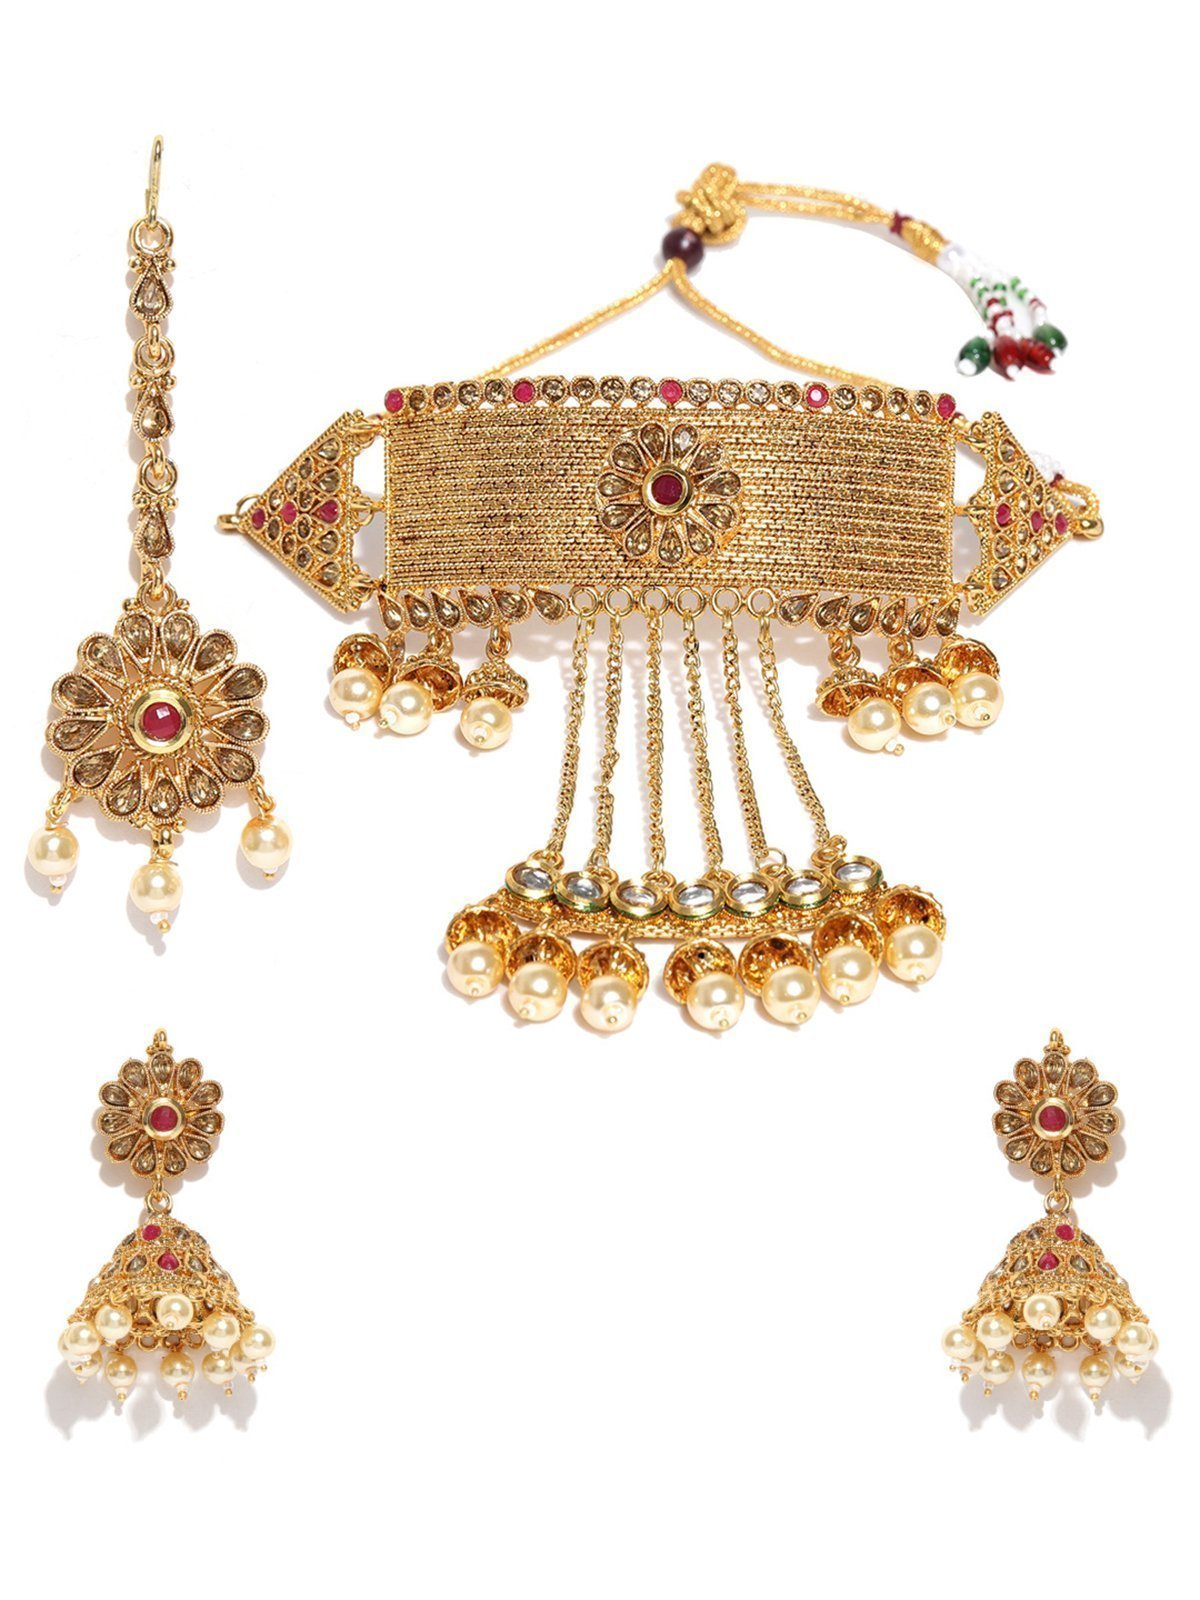 Zaveri Pearls Gold Tone Kundan & Pearls Bridal Choker Necklace Set